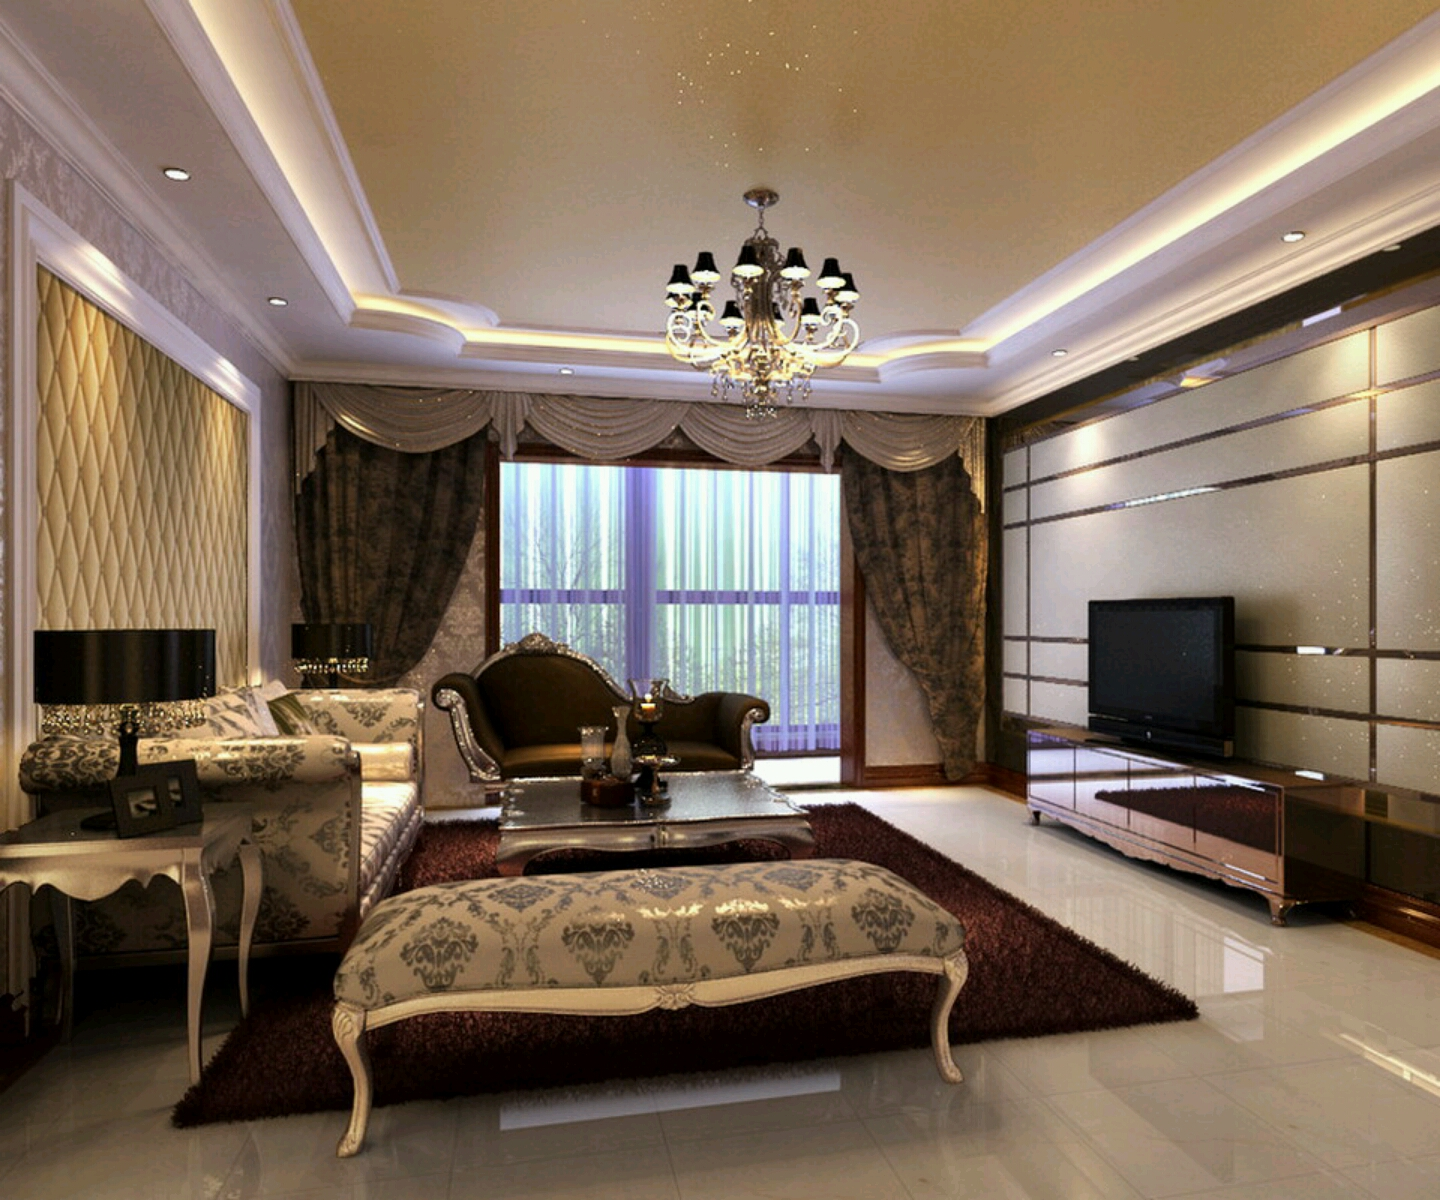 New home designs latest luxury homes interior decoration for Home interior decorating ideas